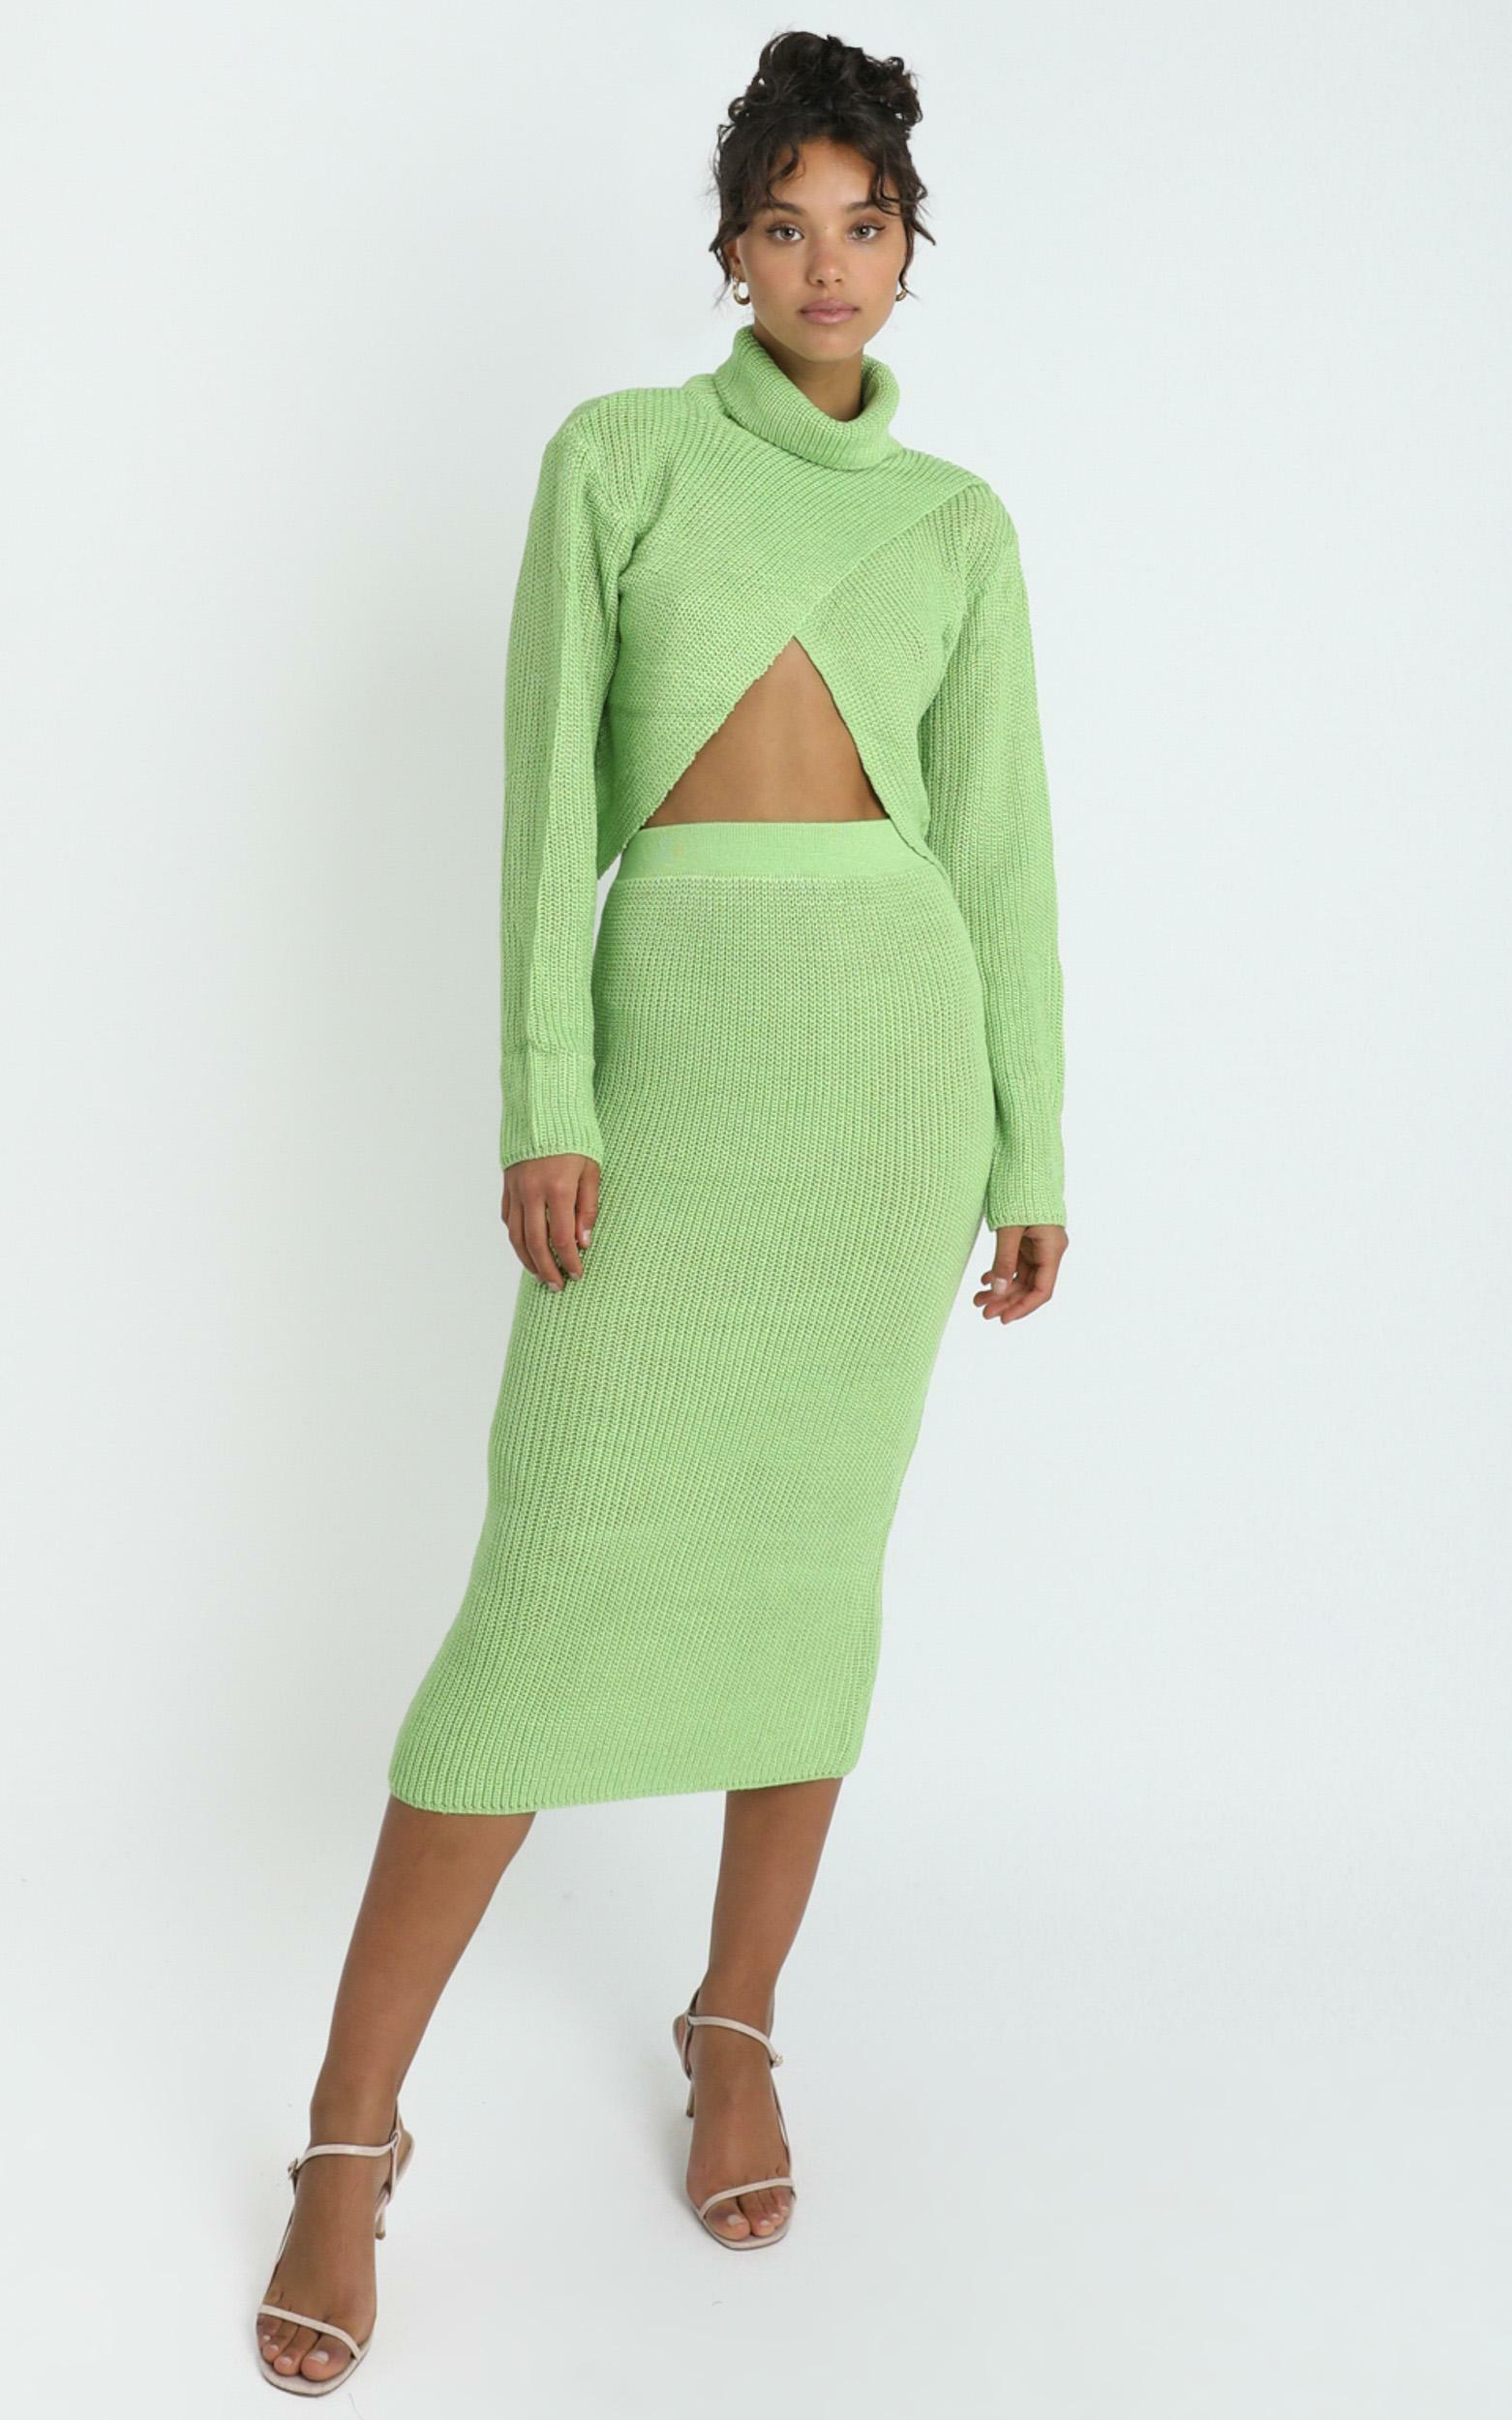 Edwynna Skirt in Green - 8 (S), Green, hi-res image number null